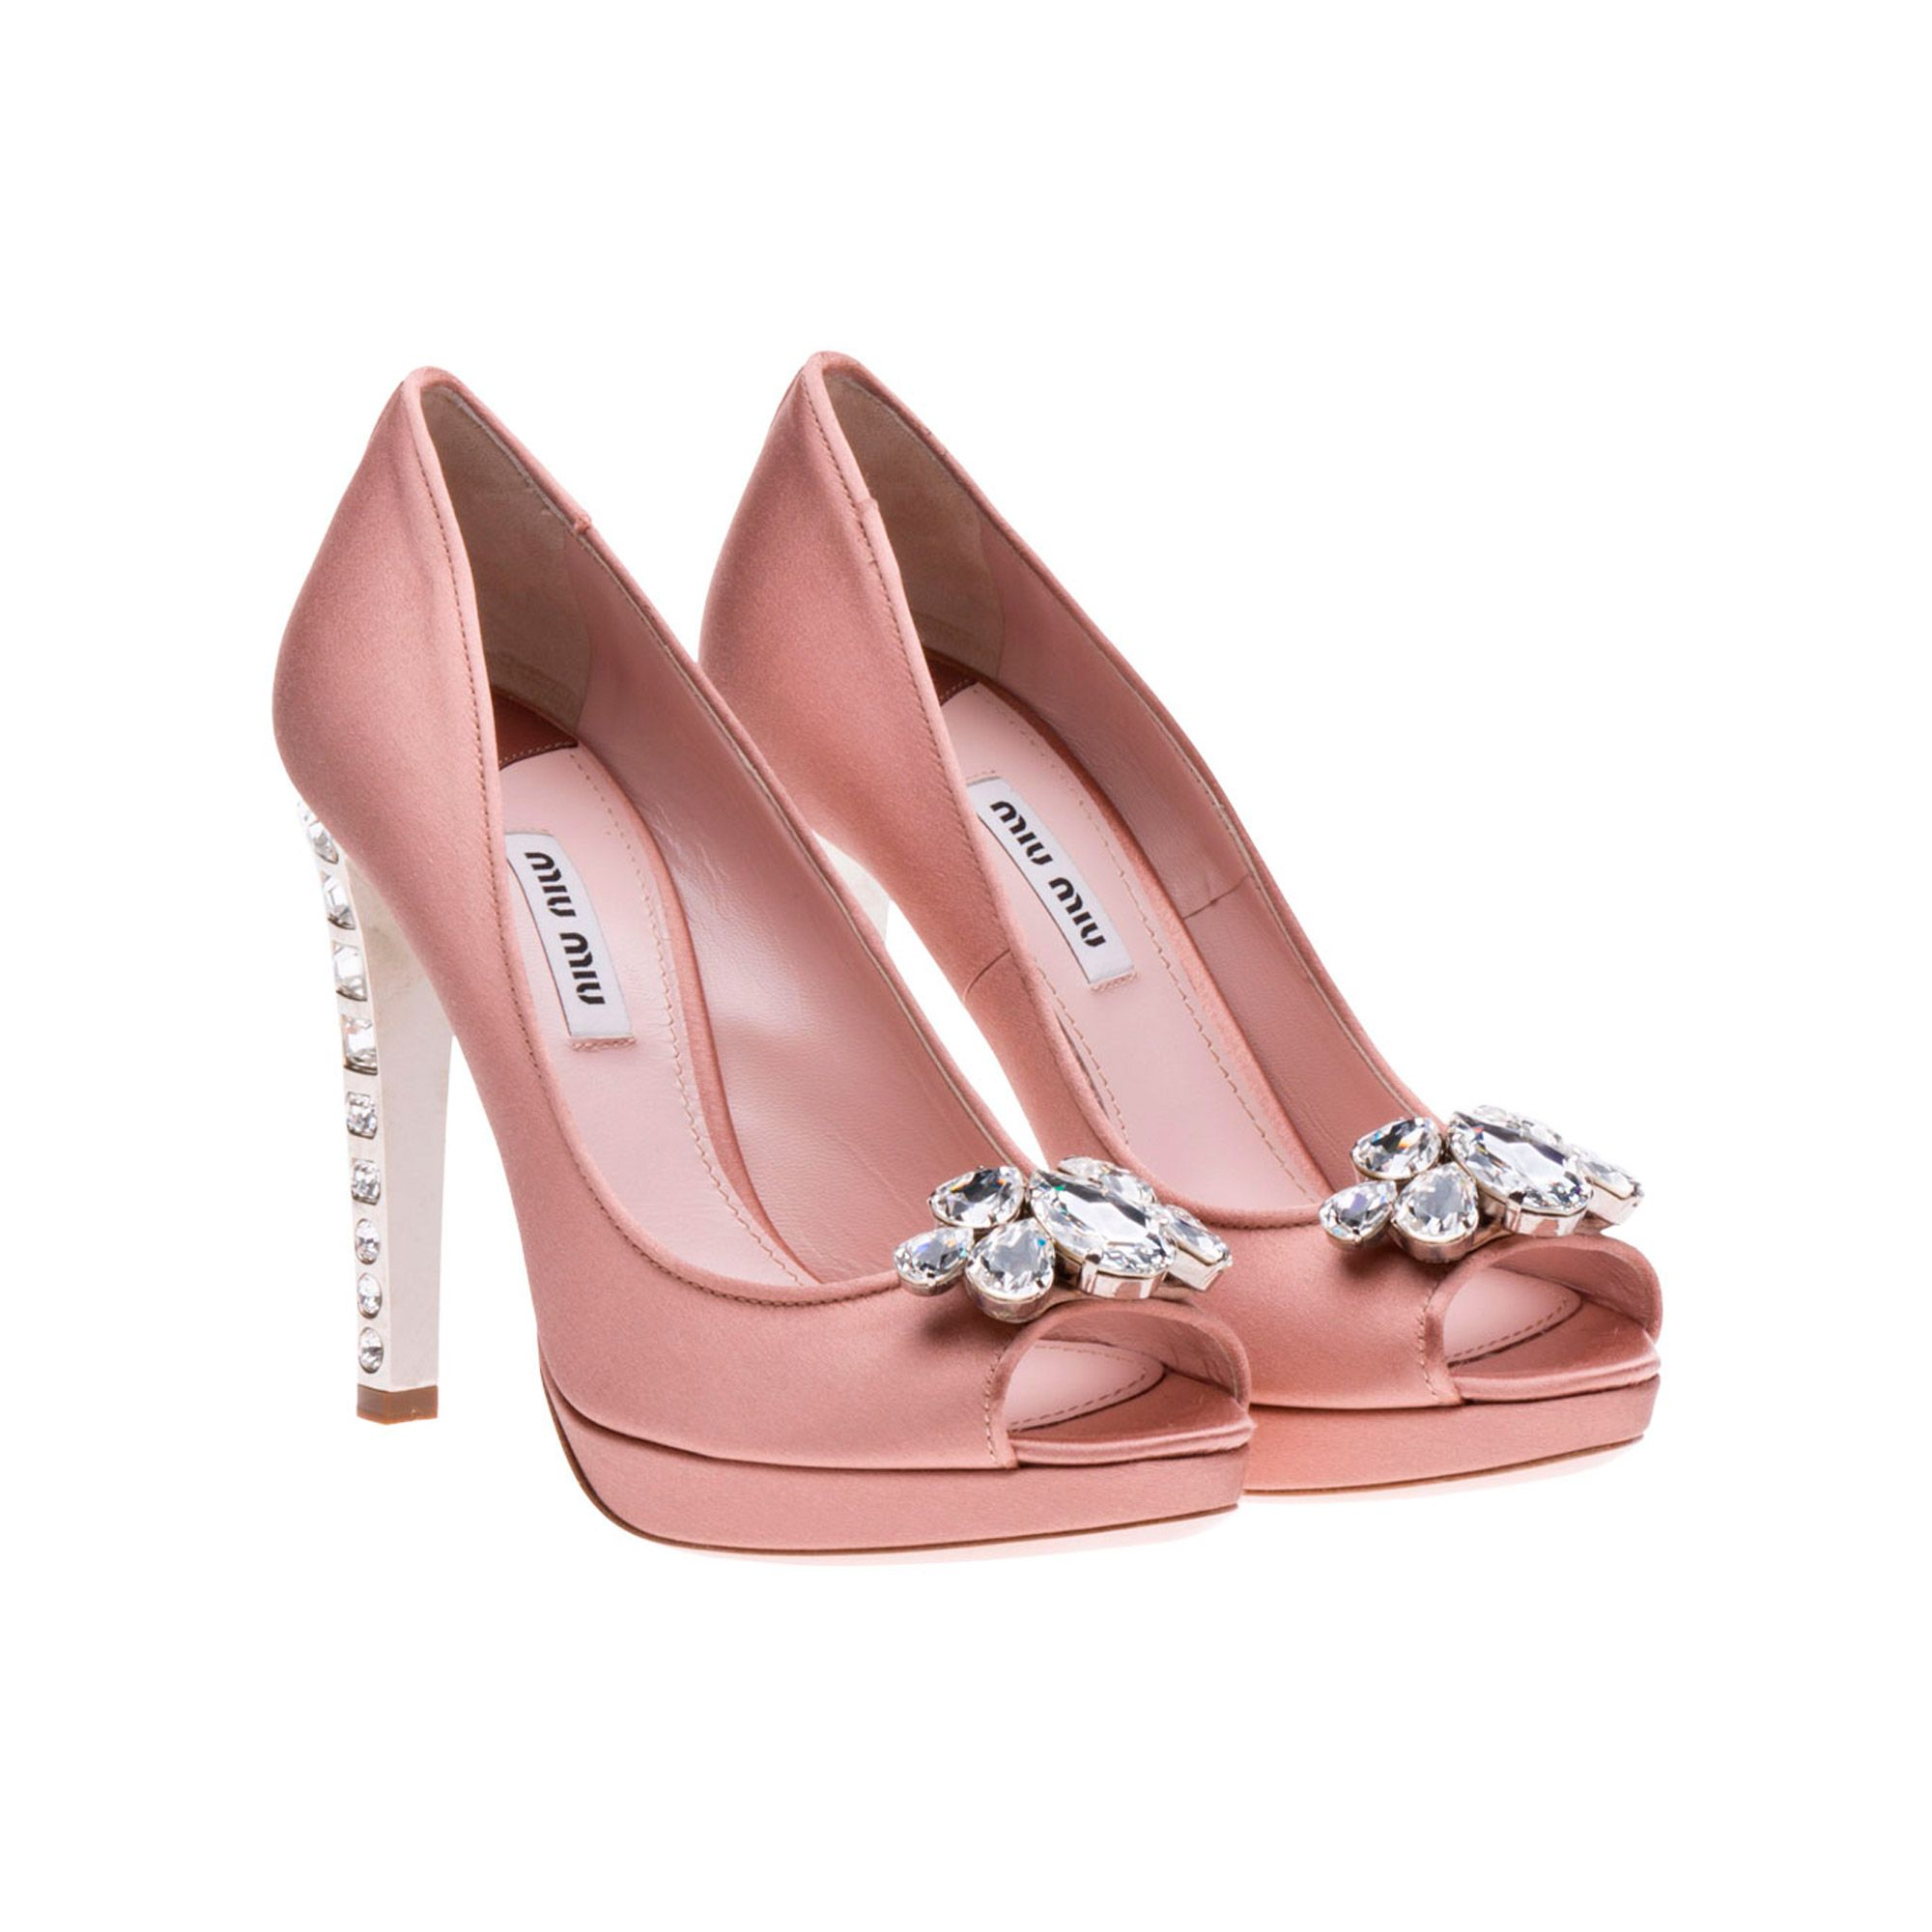 Miu P Toe Platform Pumps They Have Jeweled Heels